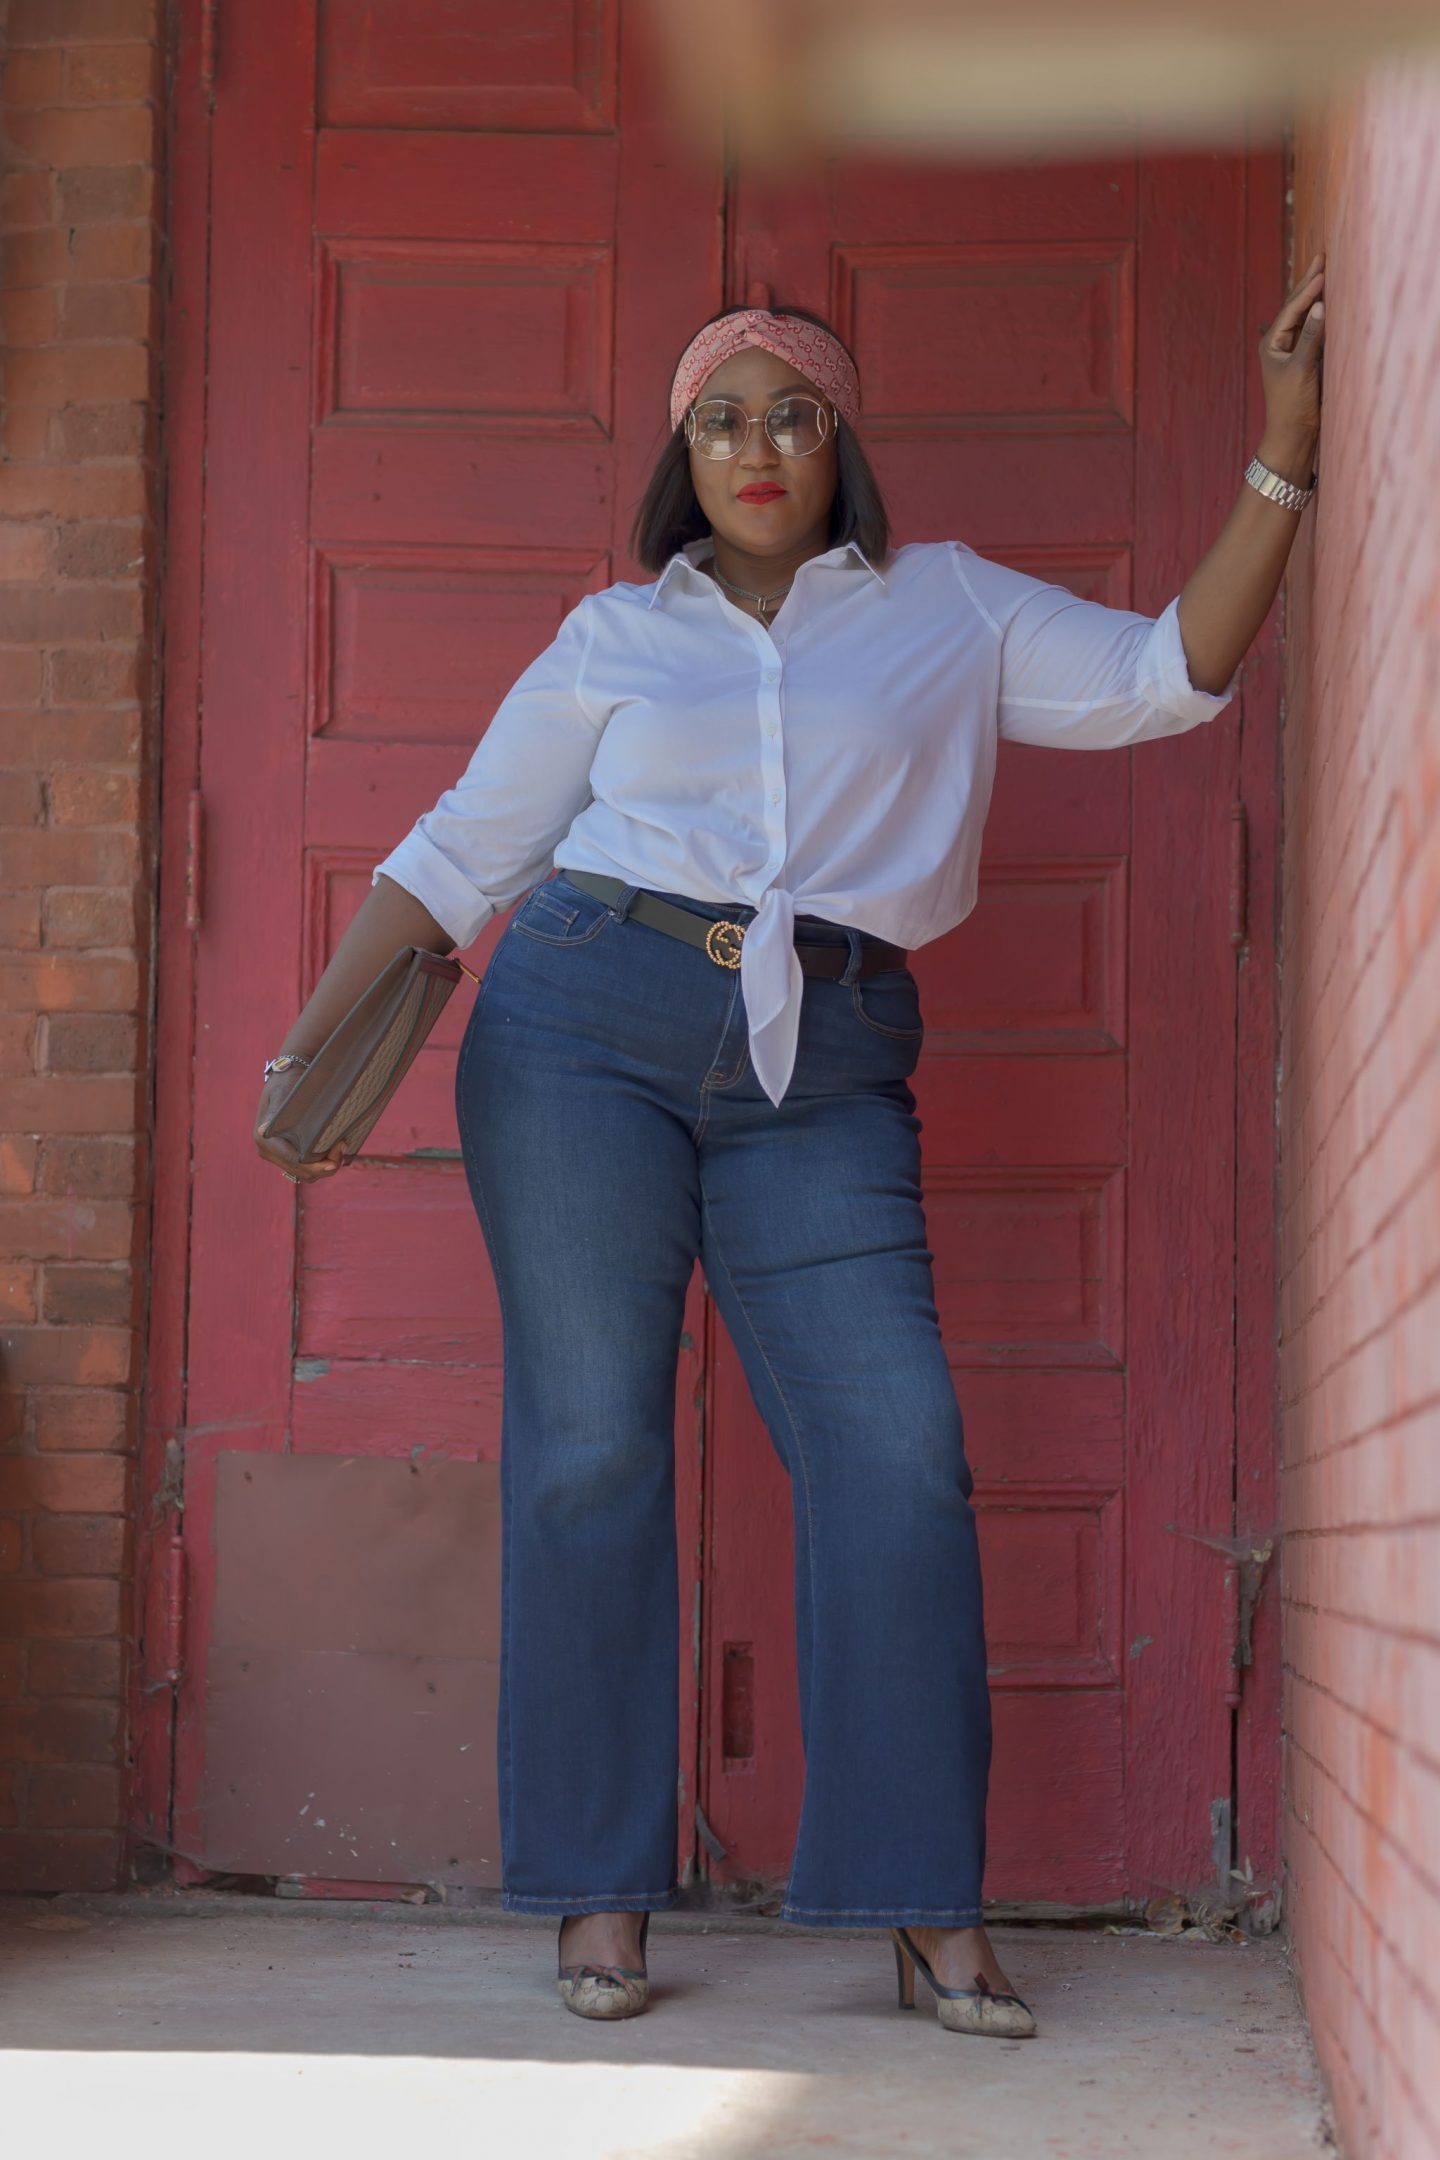 Influencer Nikki Free leaning on wall wearing Lane Bryant Flex Magic Waistband Jean